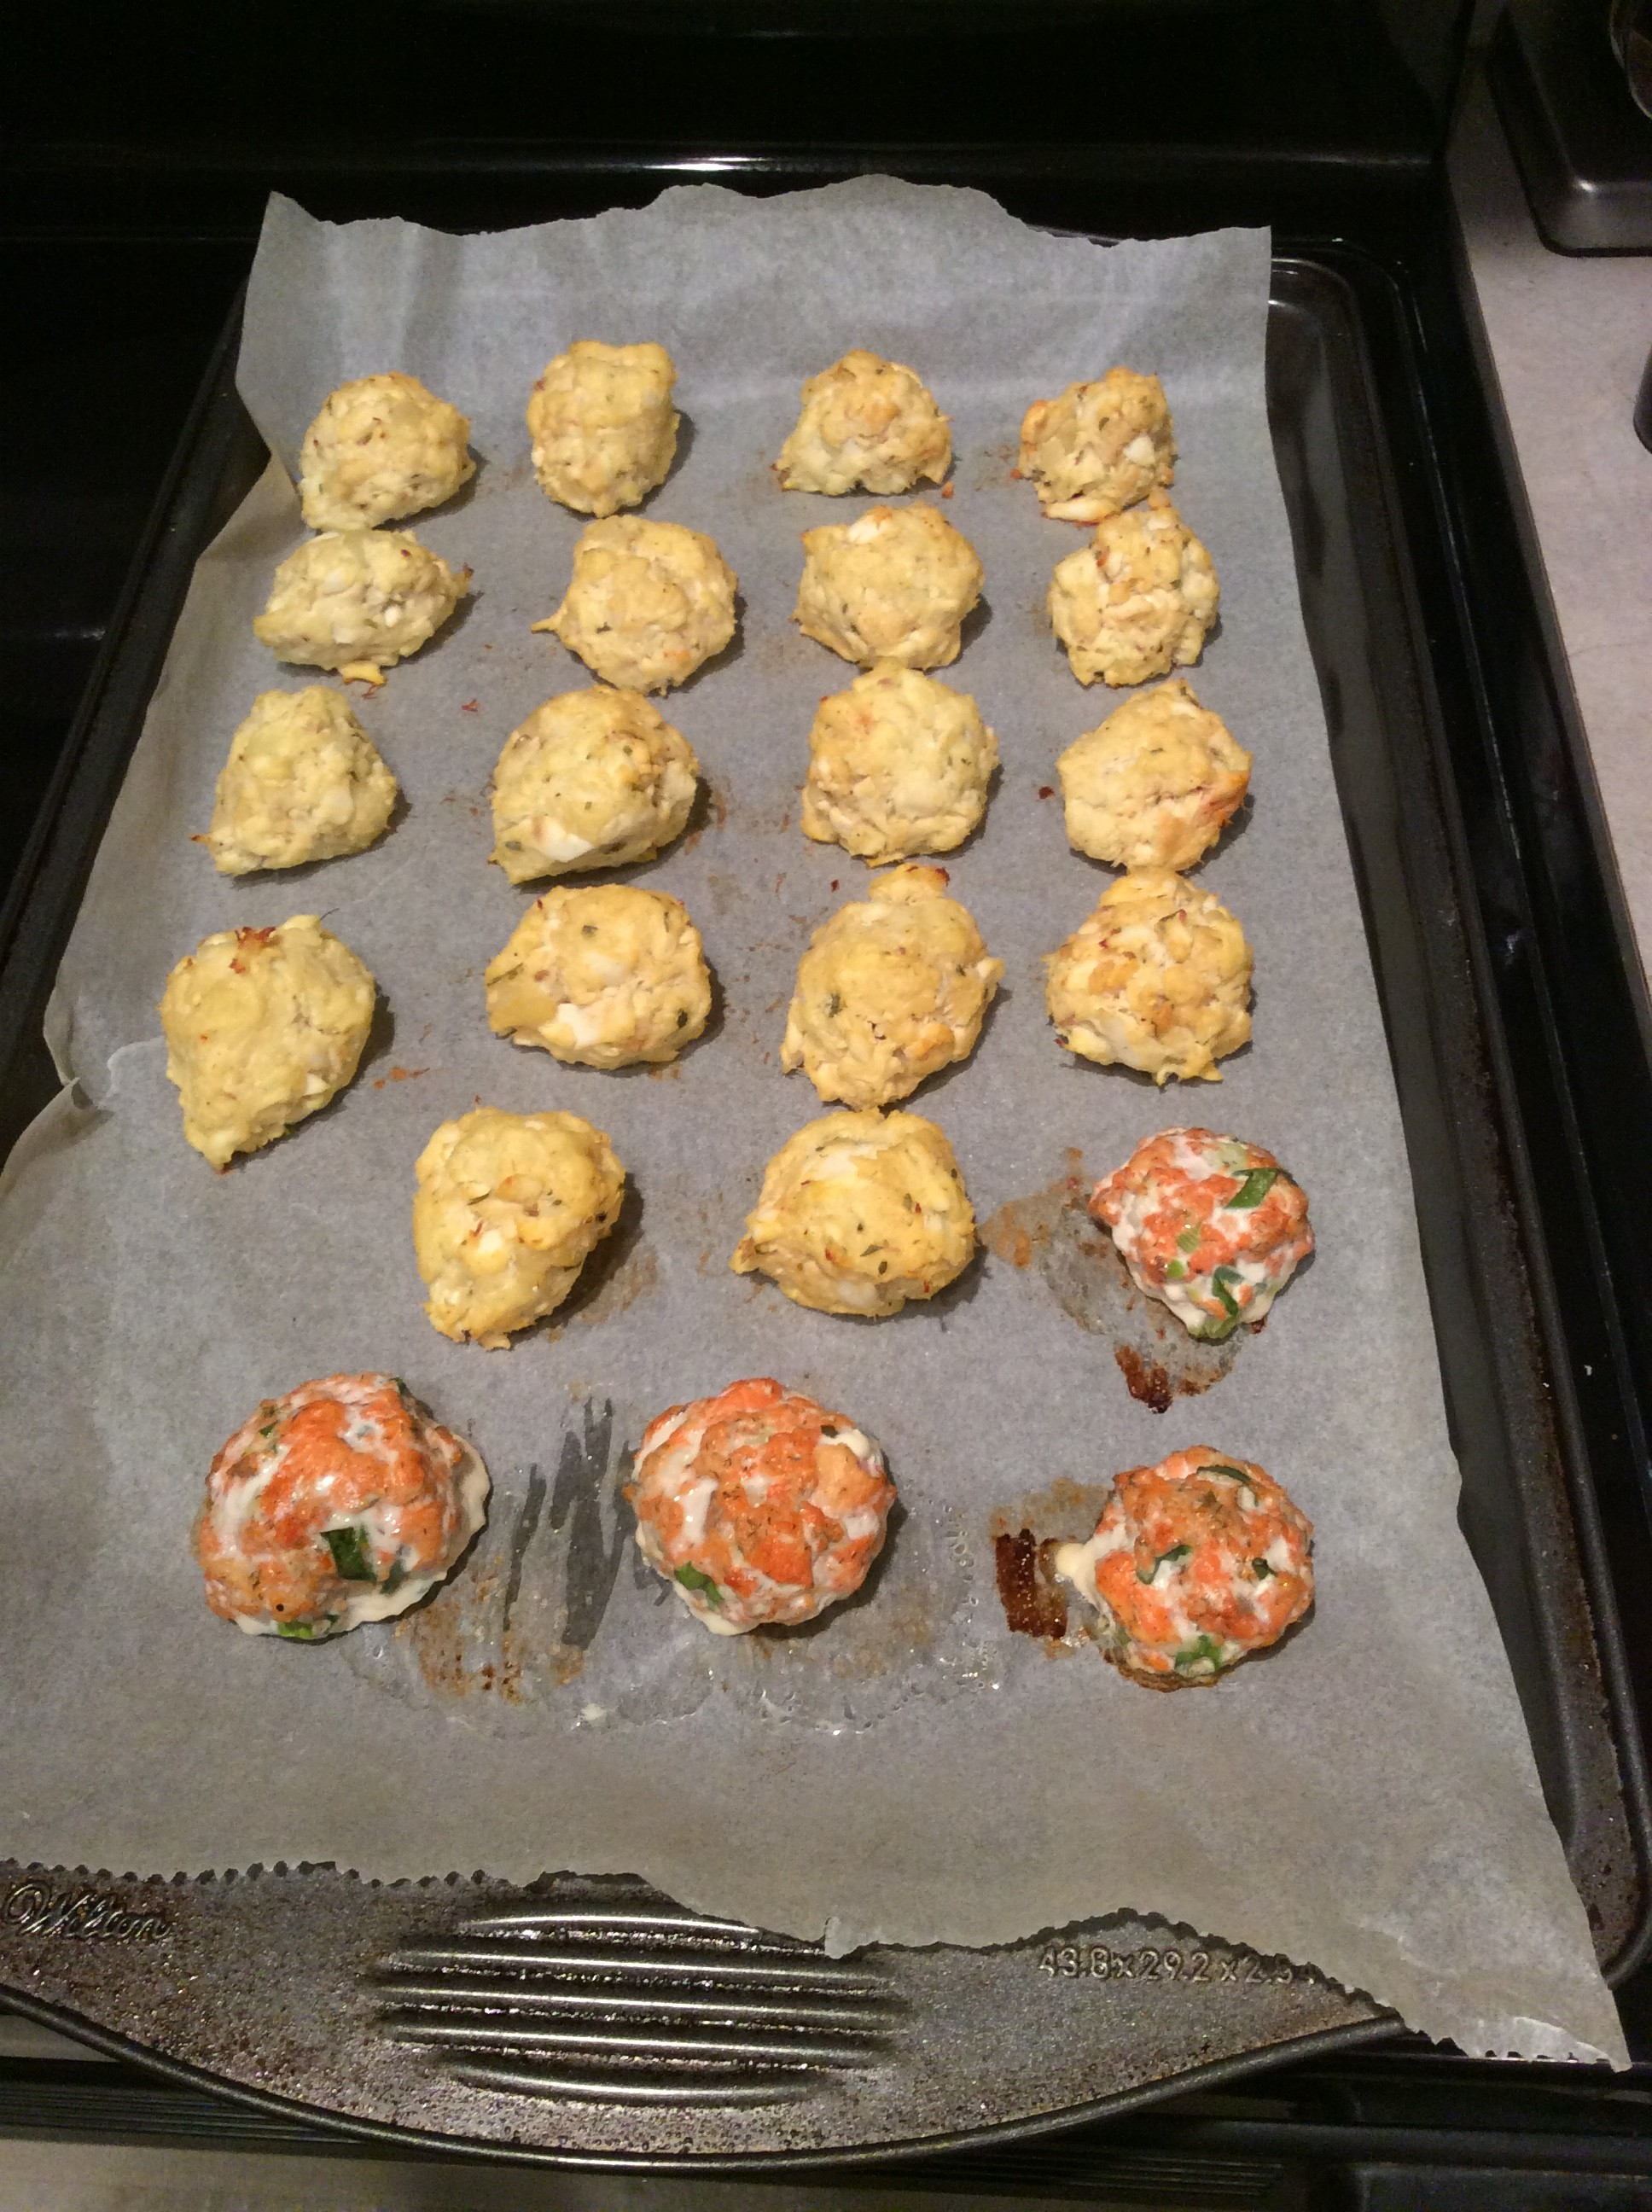 Fish balls on tray after baking